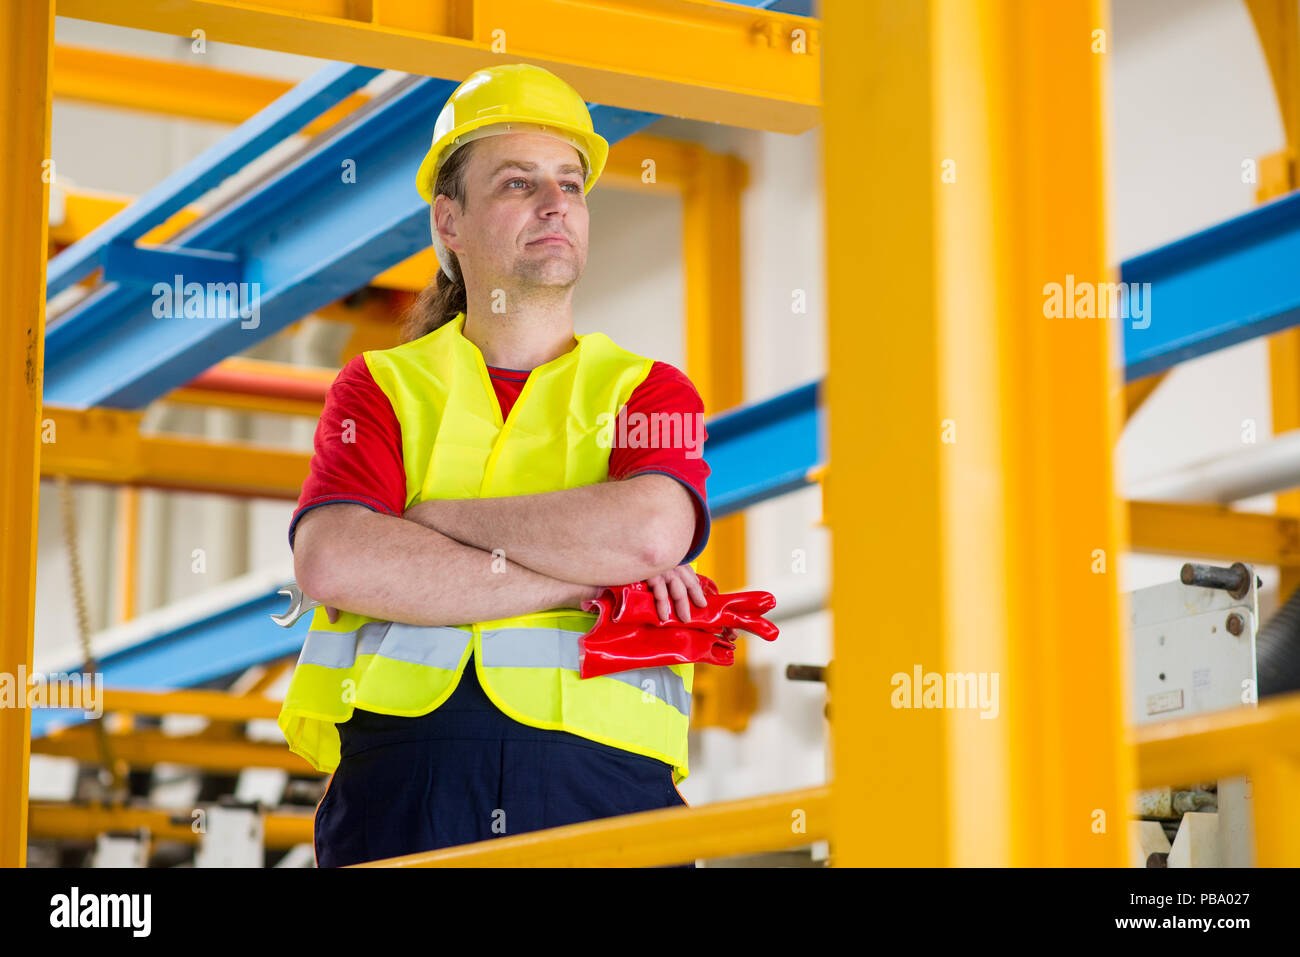 Factory worker in yellow reflective suit with yellow helmet with his arms crossed - Stock Image